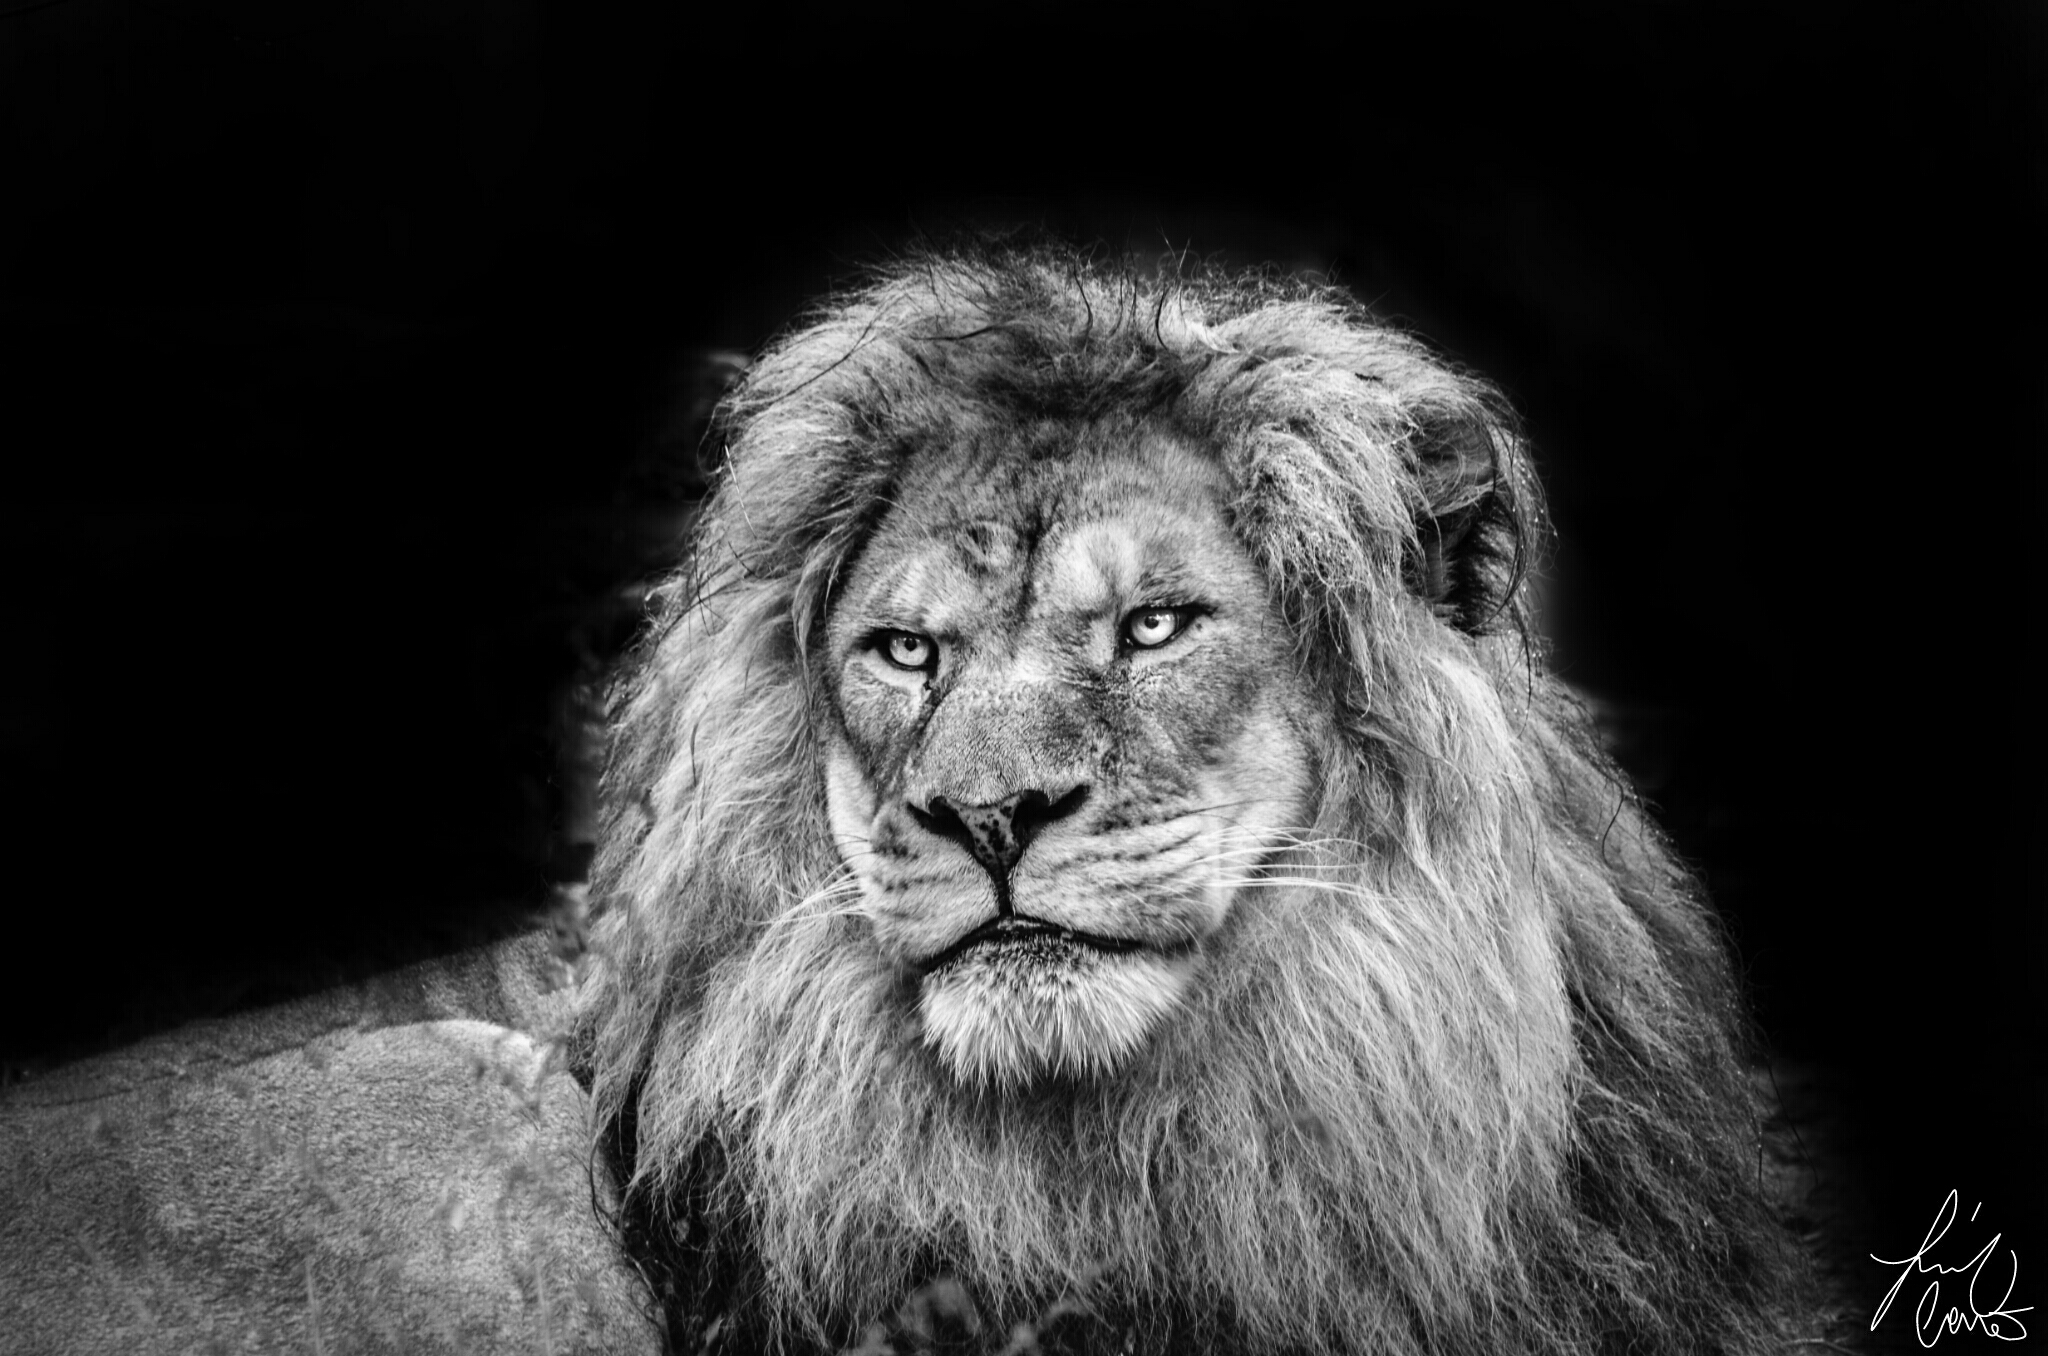 Nature Lion Big Cats Fury Angry Portrait Monochrome: Blackandwhite Blackandwhiteportrait Emotions Petsandani